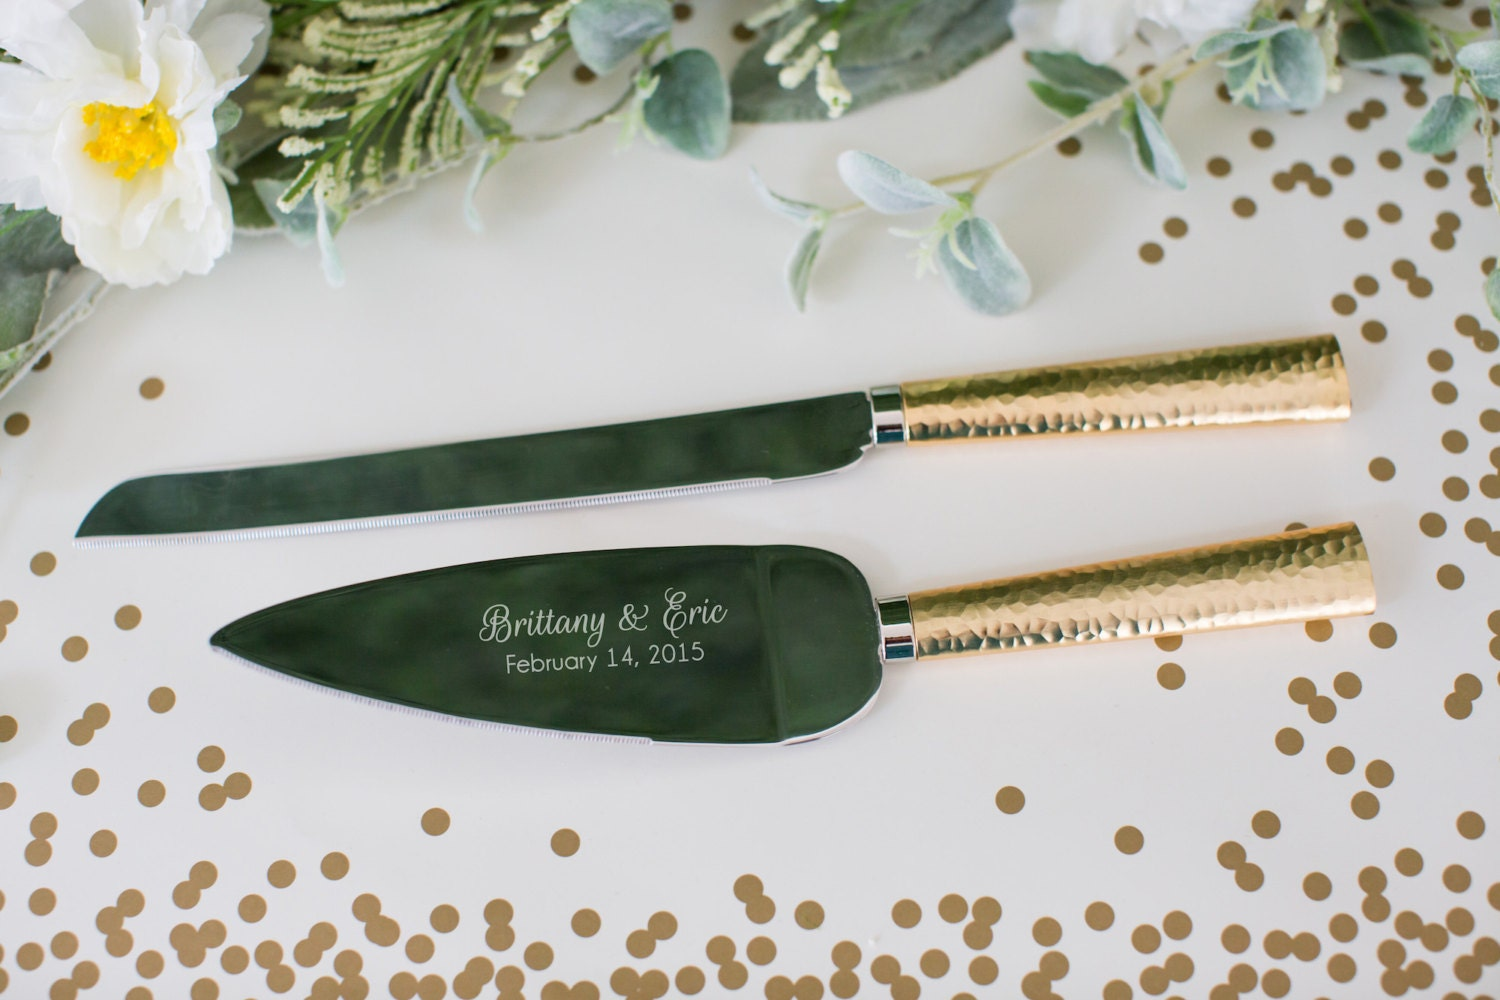 personalized hammered gold wedding cake knife and server set. Black Bedroom Furniture Sets. Home Design Ideas